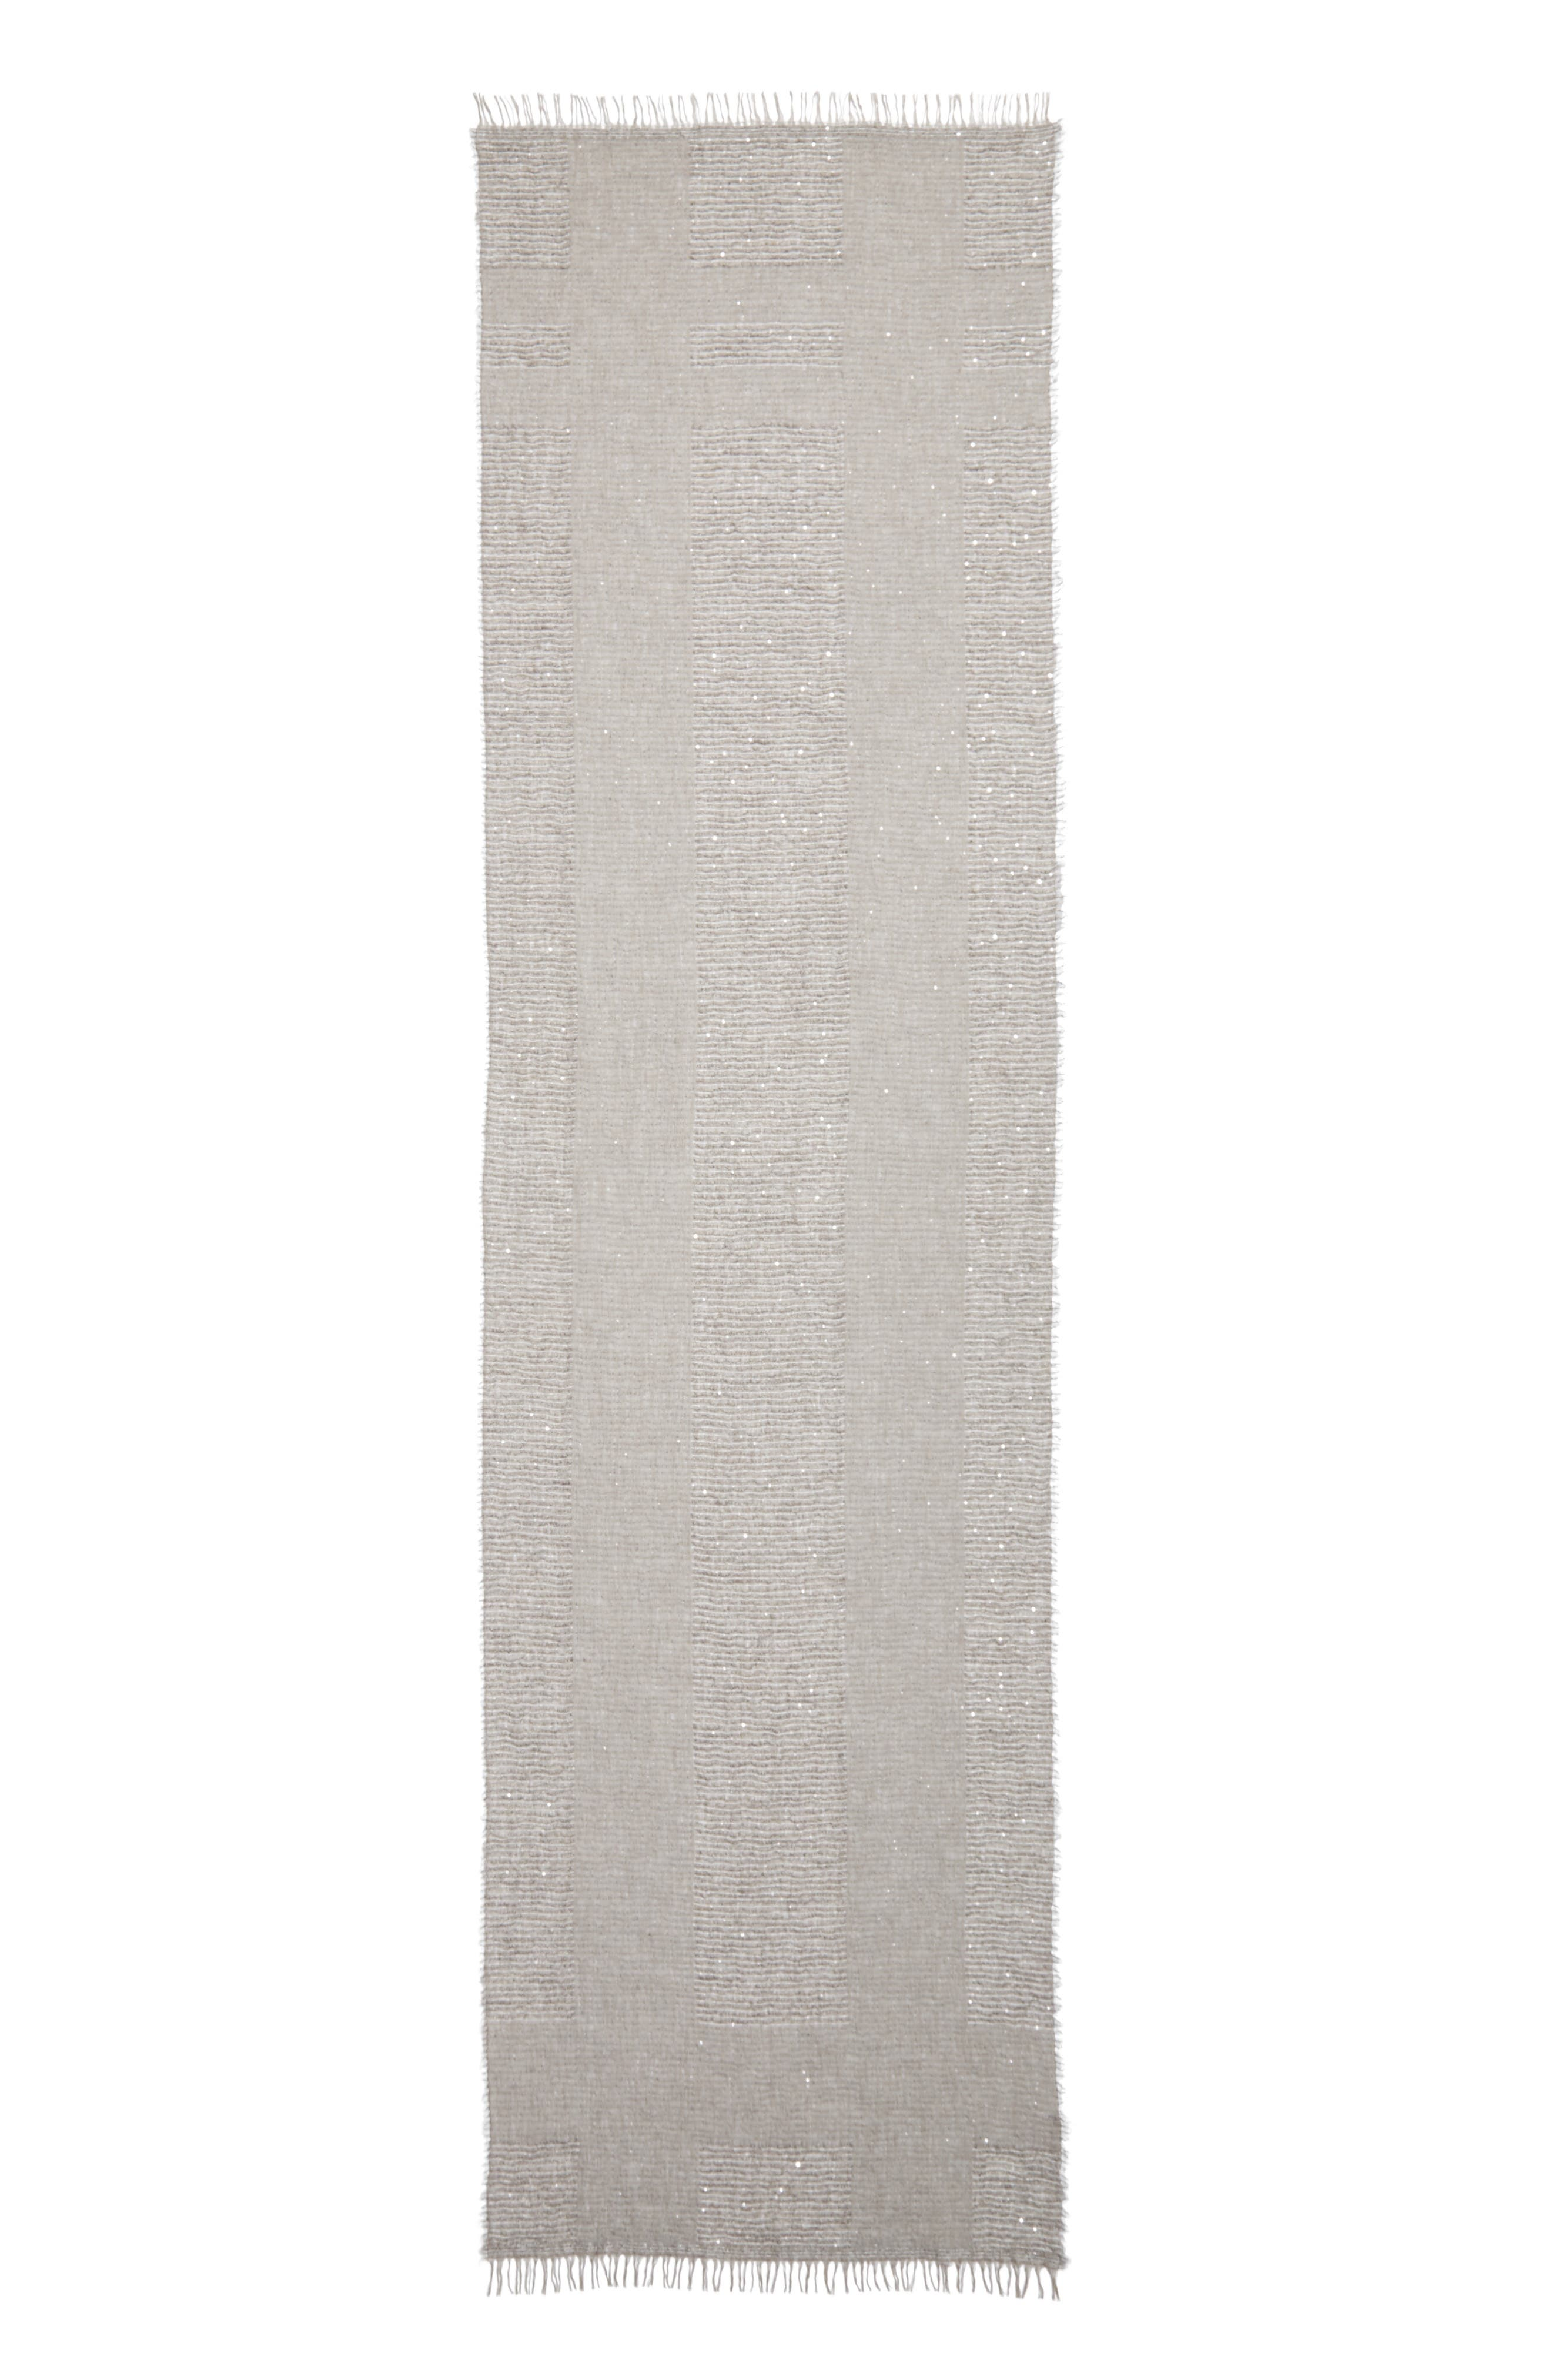 Fringed Modal Blend Scarf,                             Main thumbnail 1, color,                             Grey / Taupe